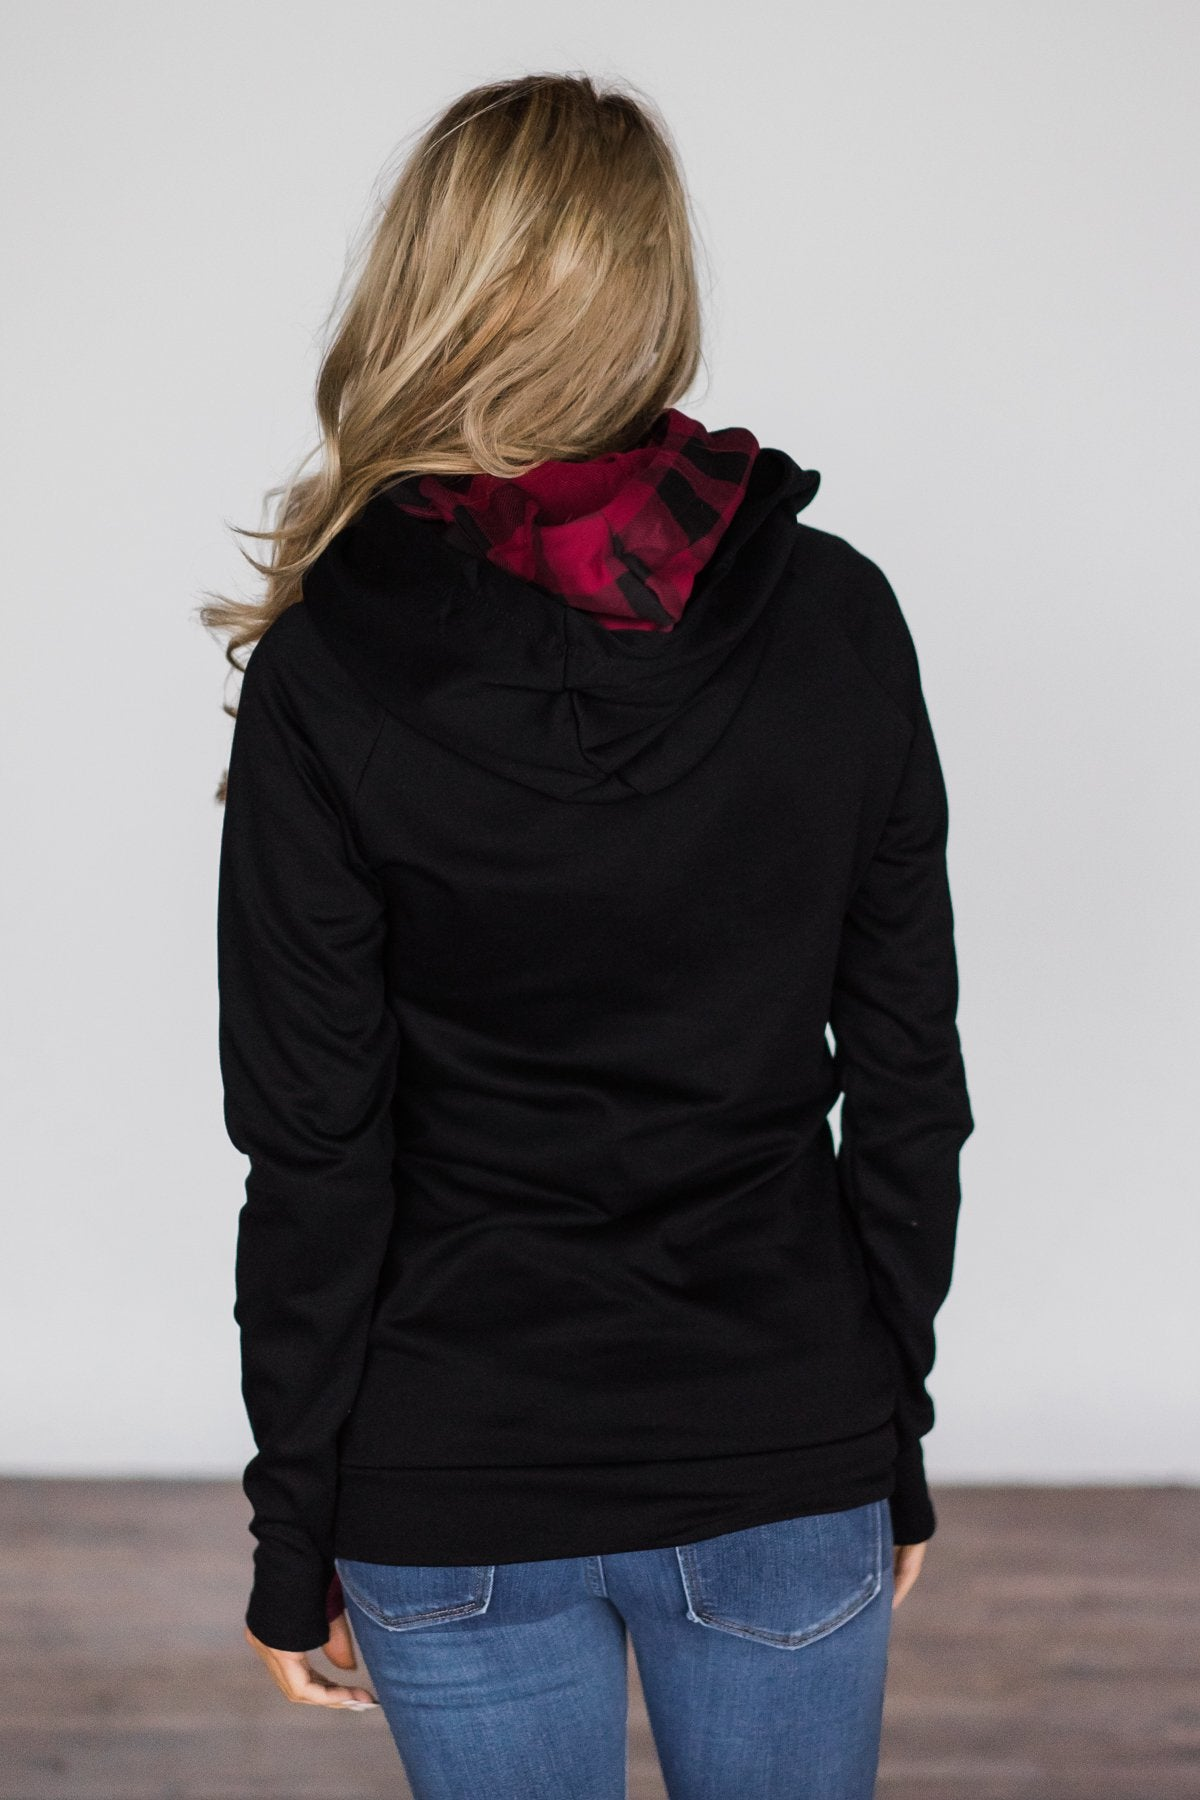 Exclusive Black and Plaid Ampersand DoubleHood